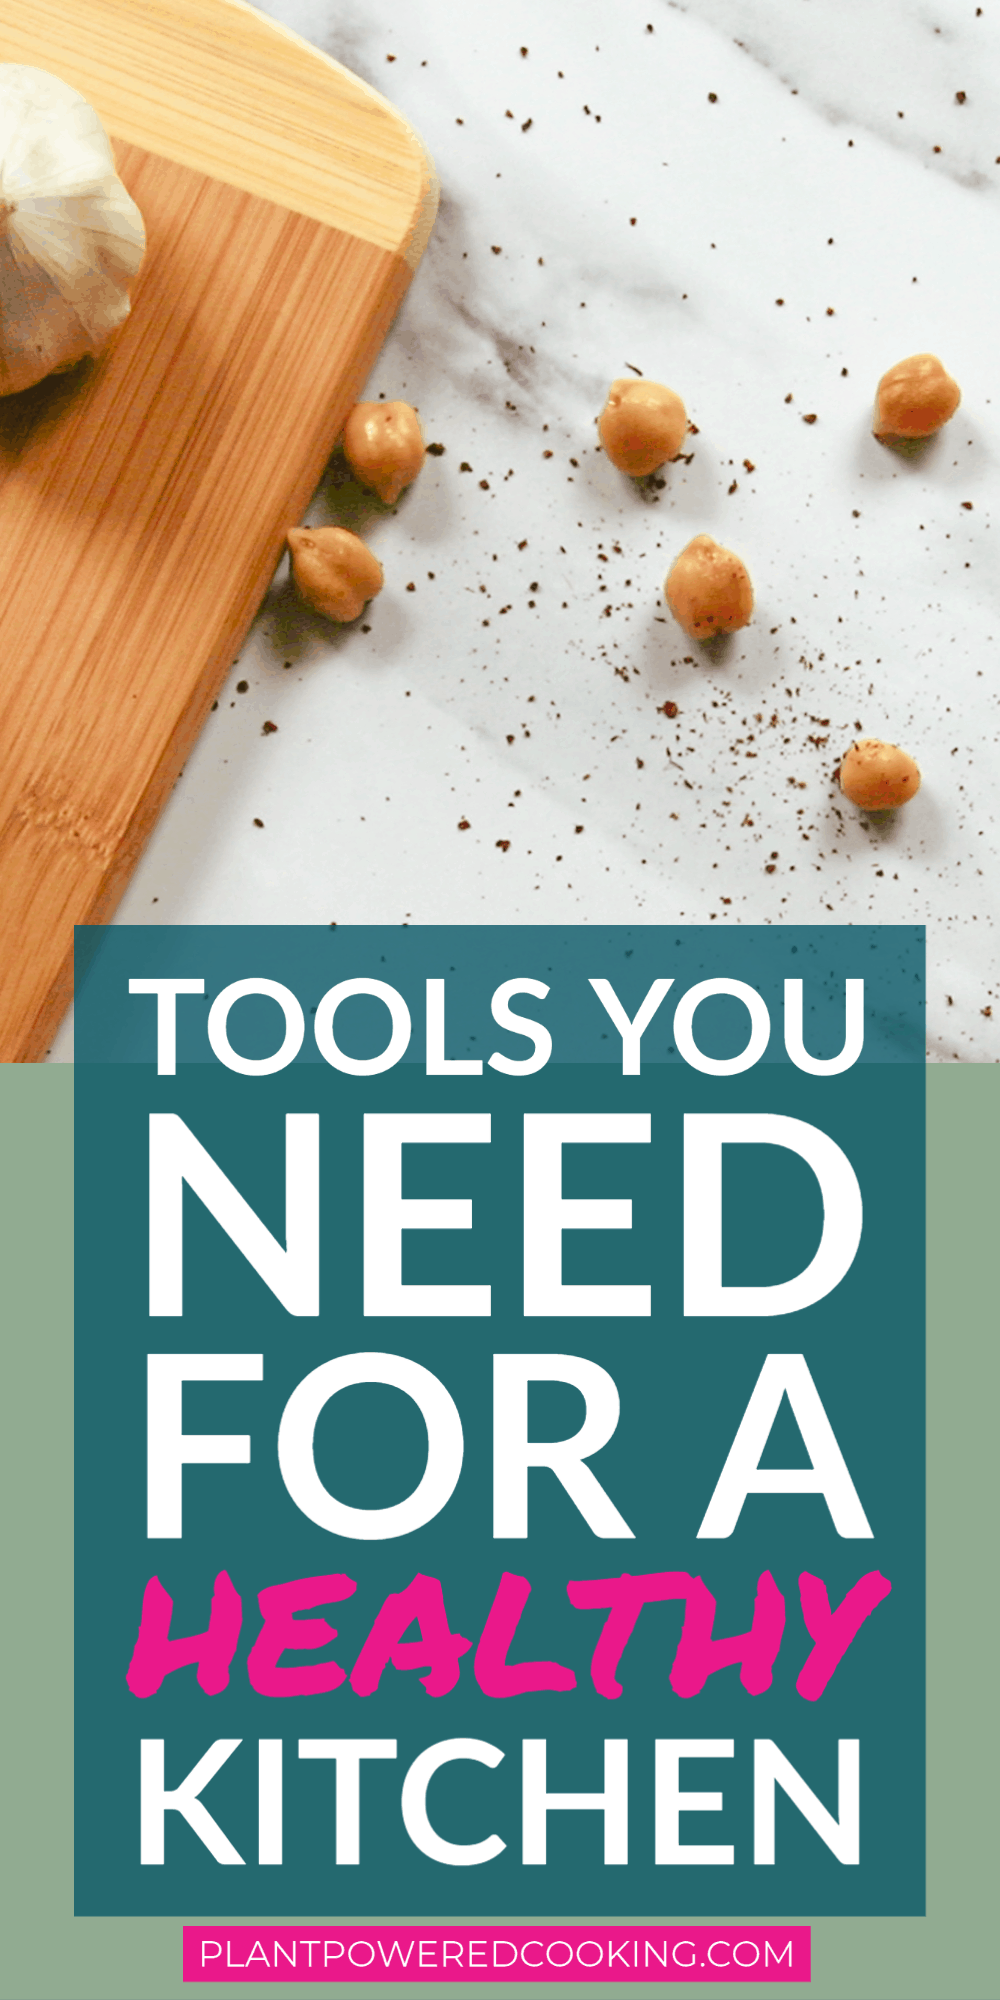 "Picture of marble countertop with text overlay that reads ""Tools You Need for a Healthy Kitchen"""